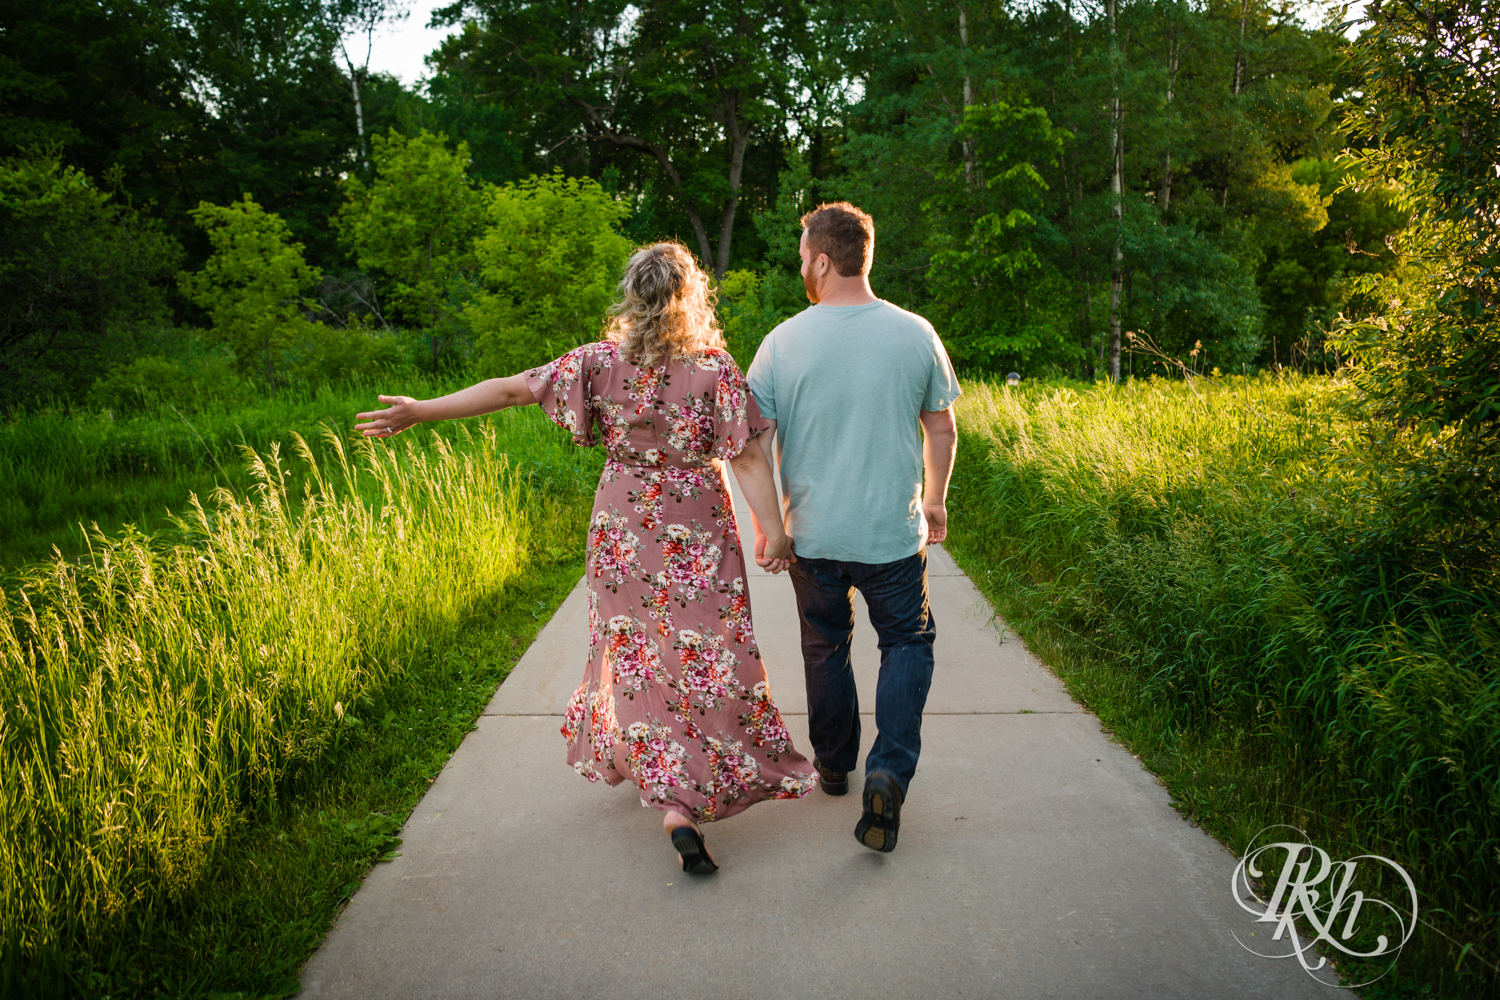 Constance & Josh - Minnesota Engagement Photography - Lebanon Hills Regional Park - RKH Images - Blog (8 of 18).jpg